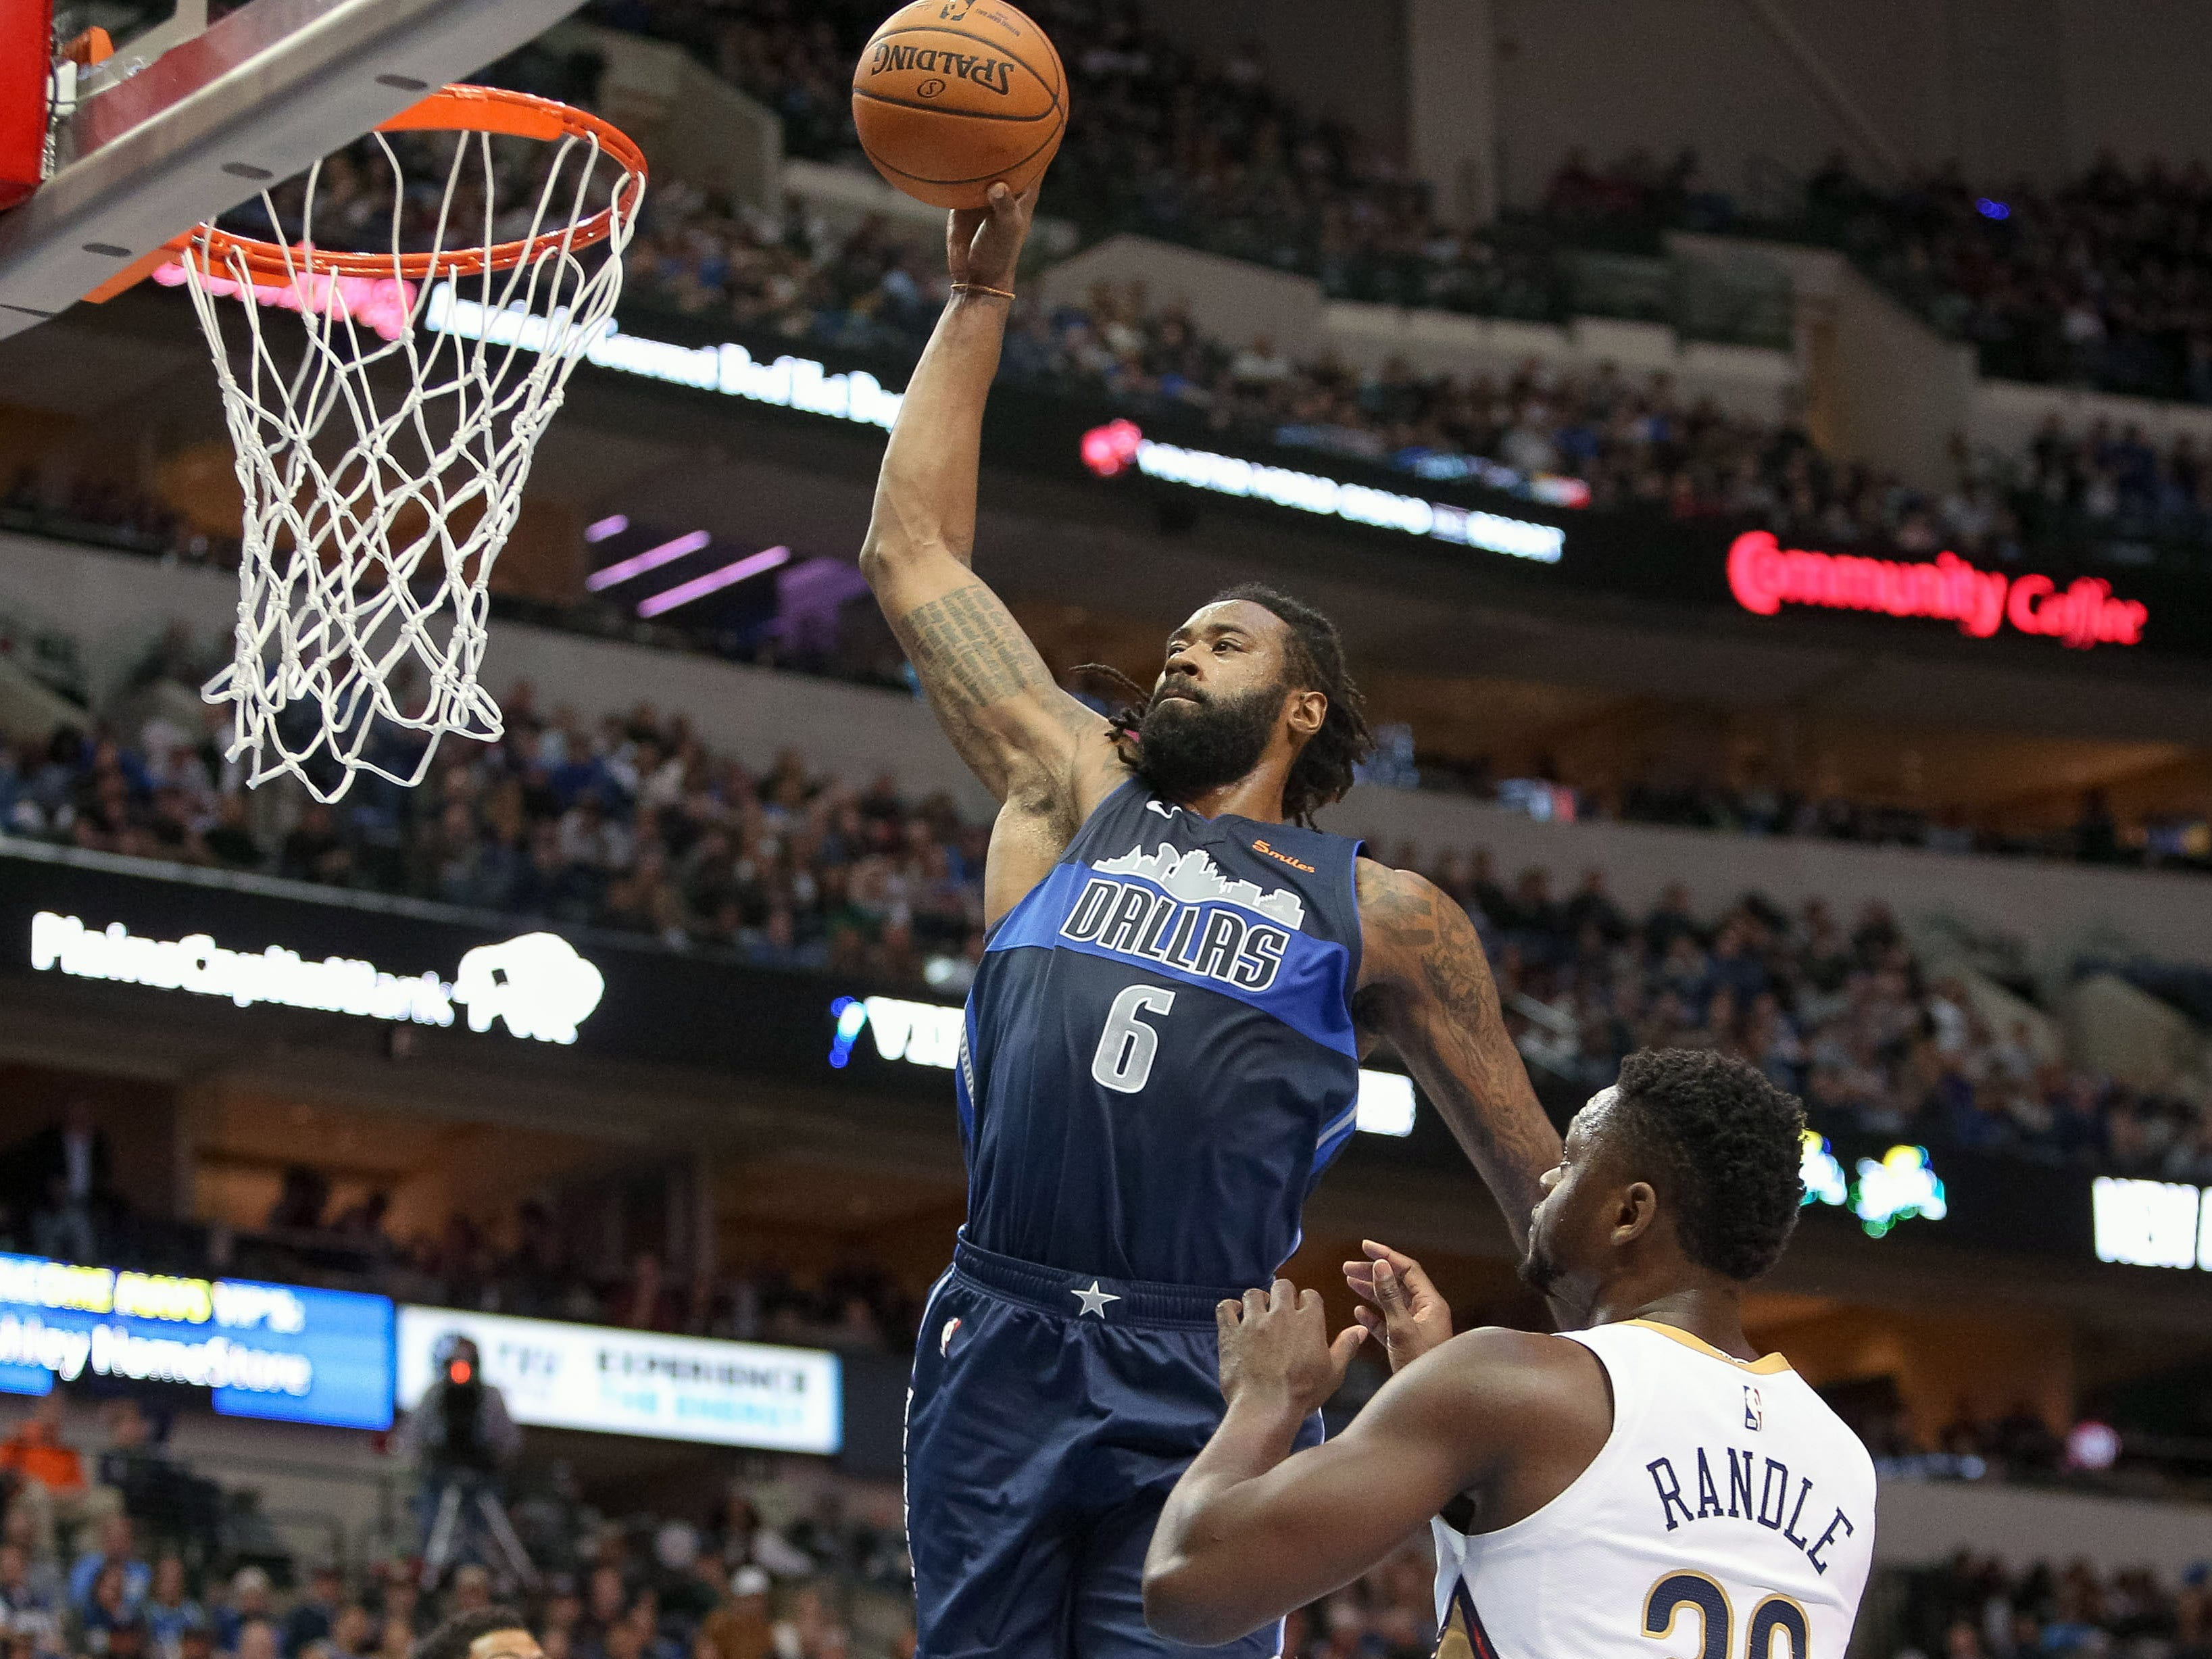 Dec. 26: Mavericks center DeAndre Jordan soars to the hoop for a monster one-handed slam during the first half against the Pelicans.